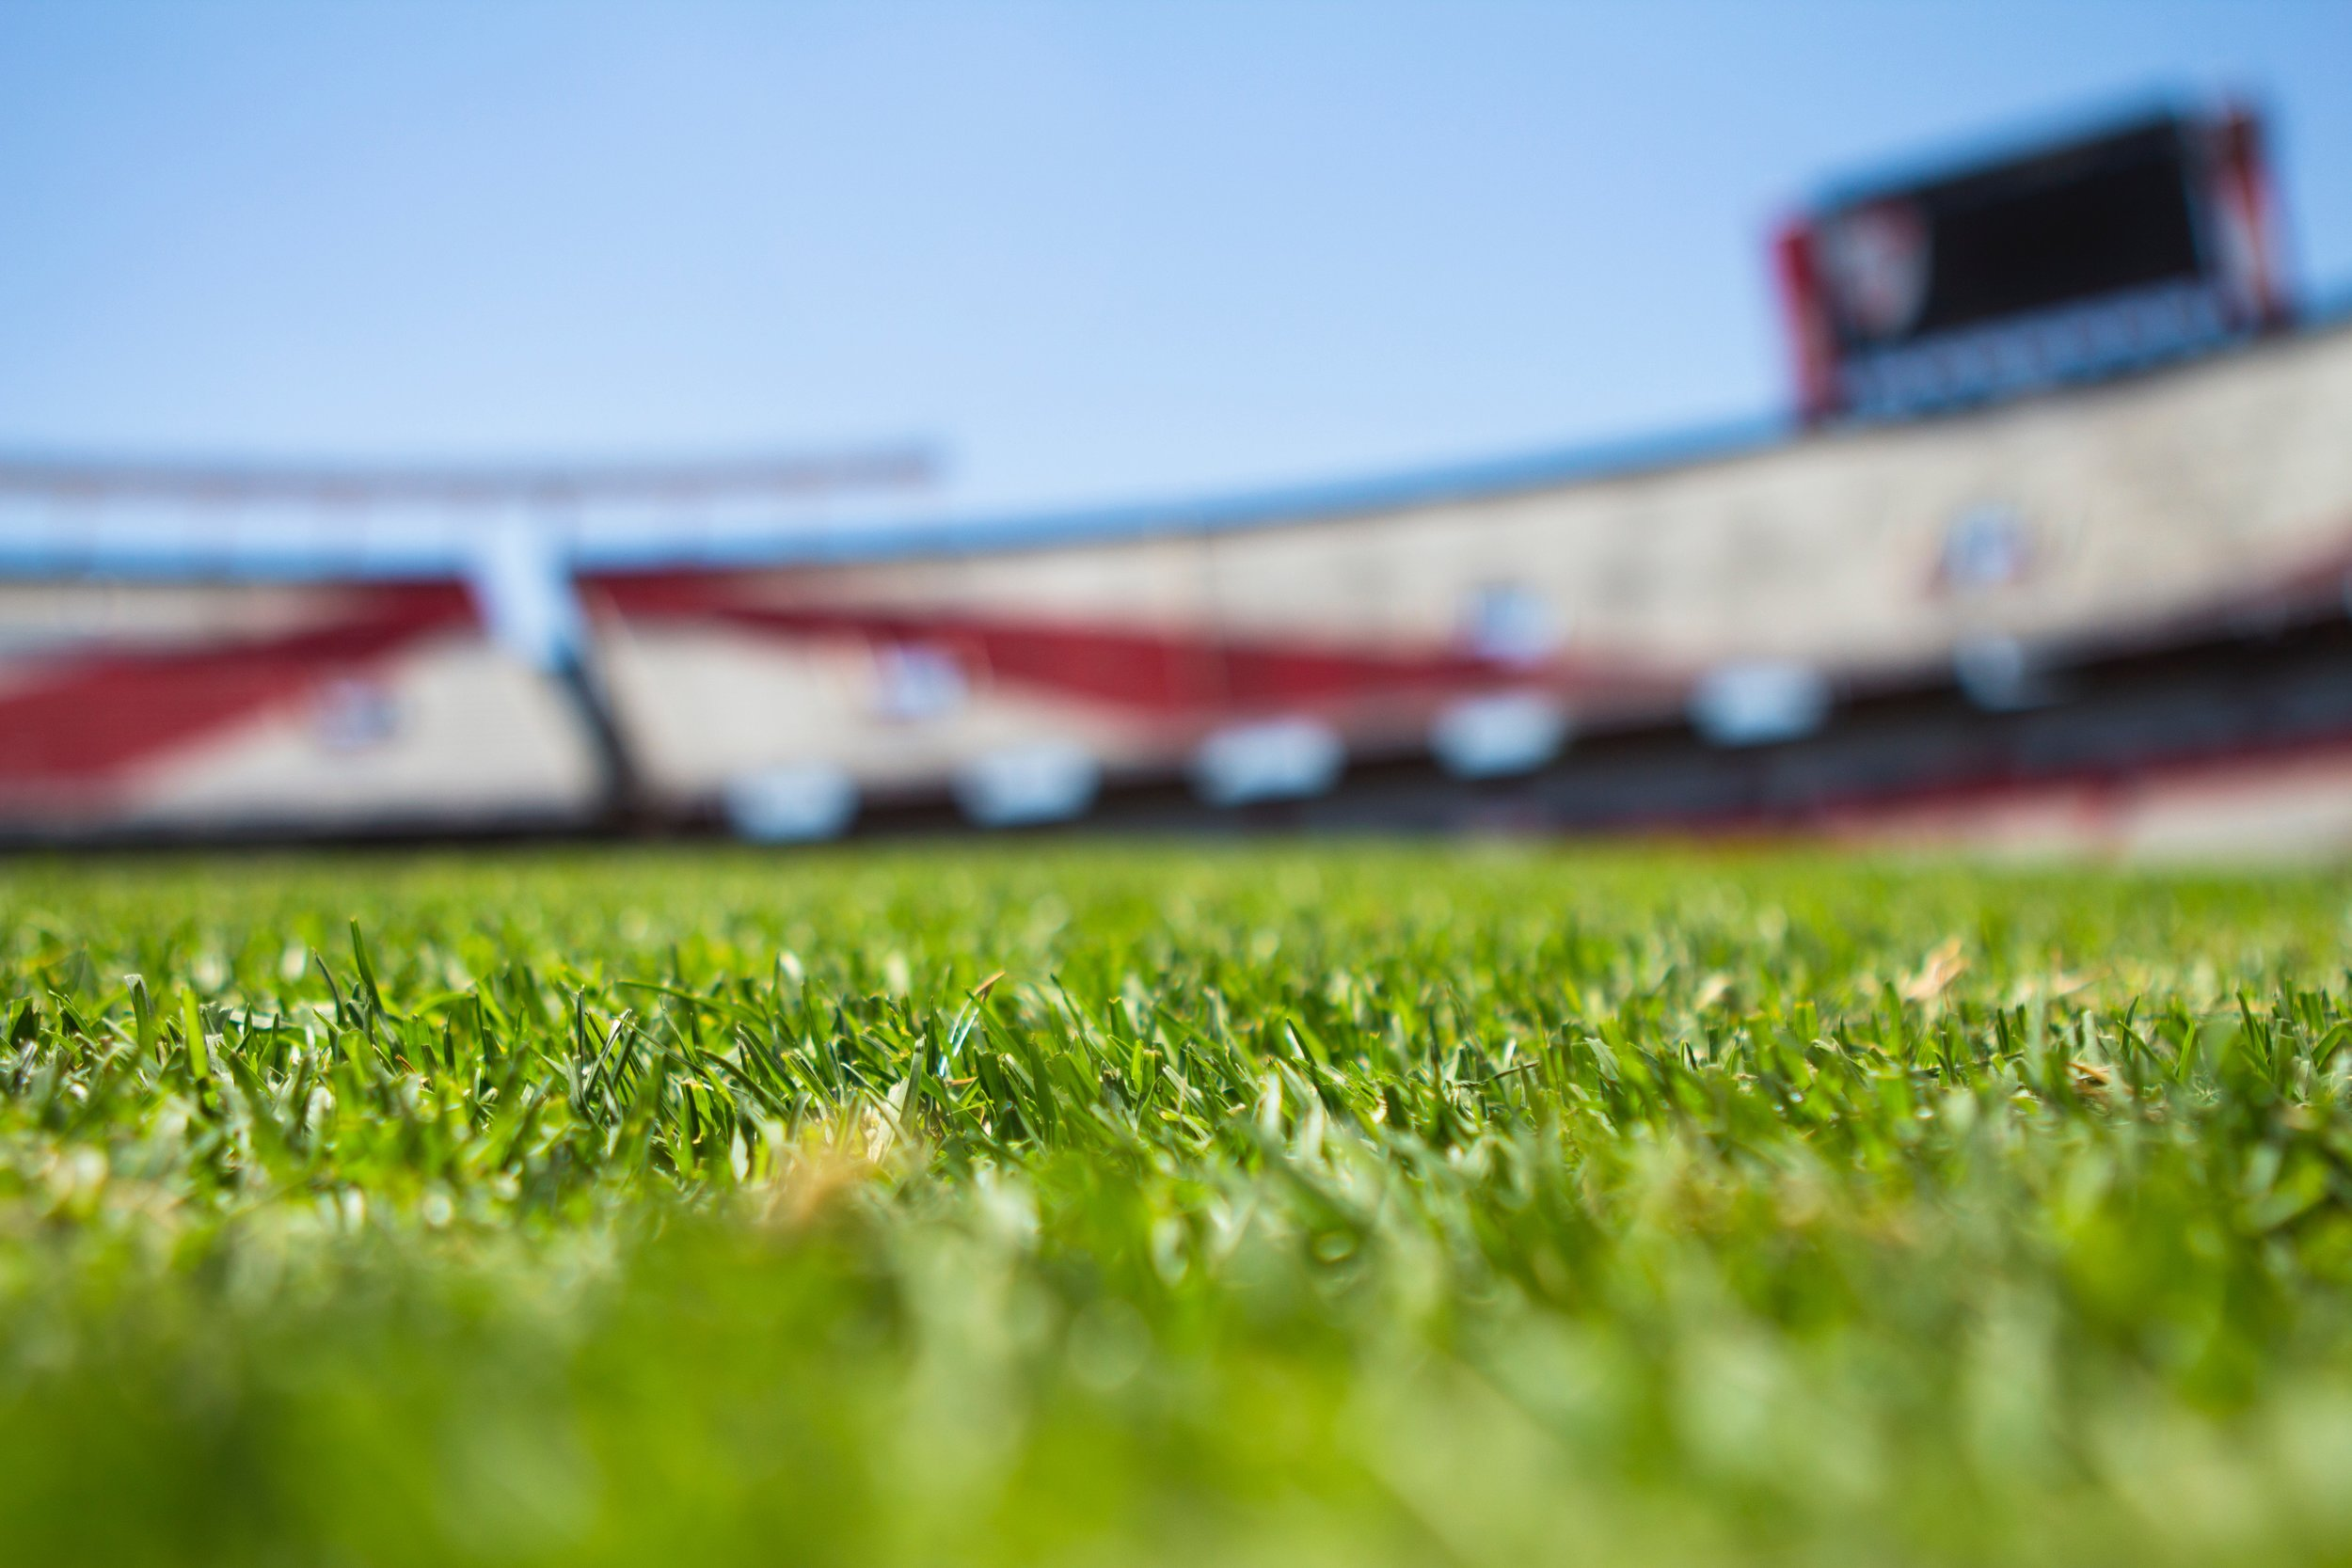 depth-of-field-field-football-field-61143.jpg